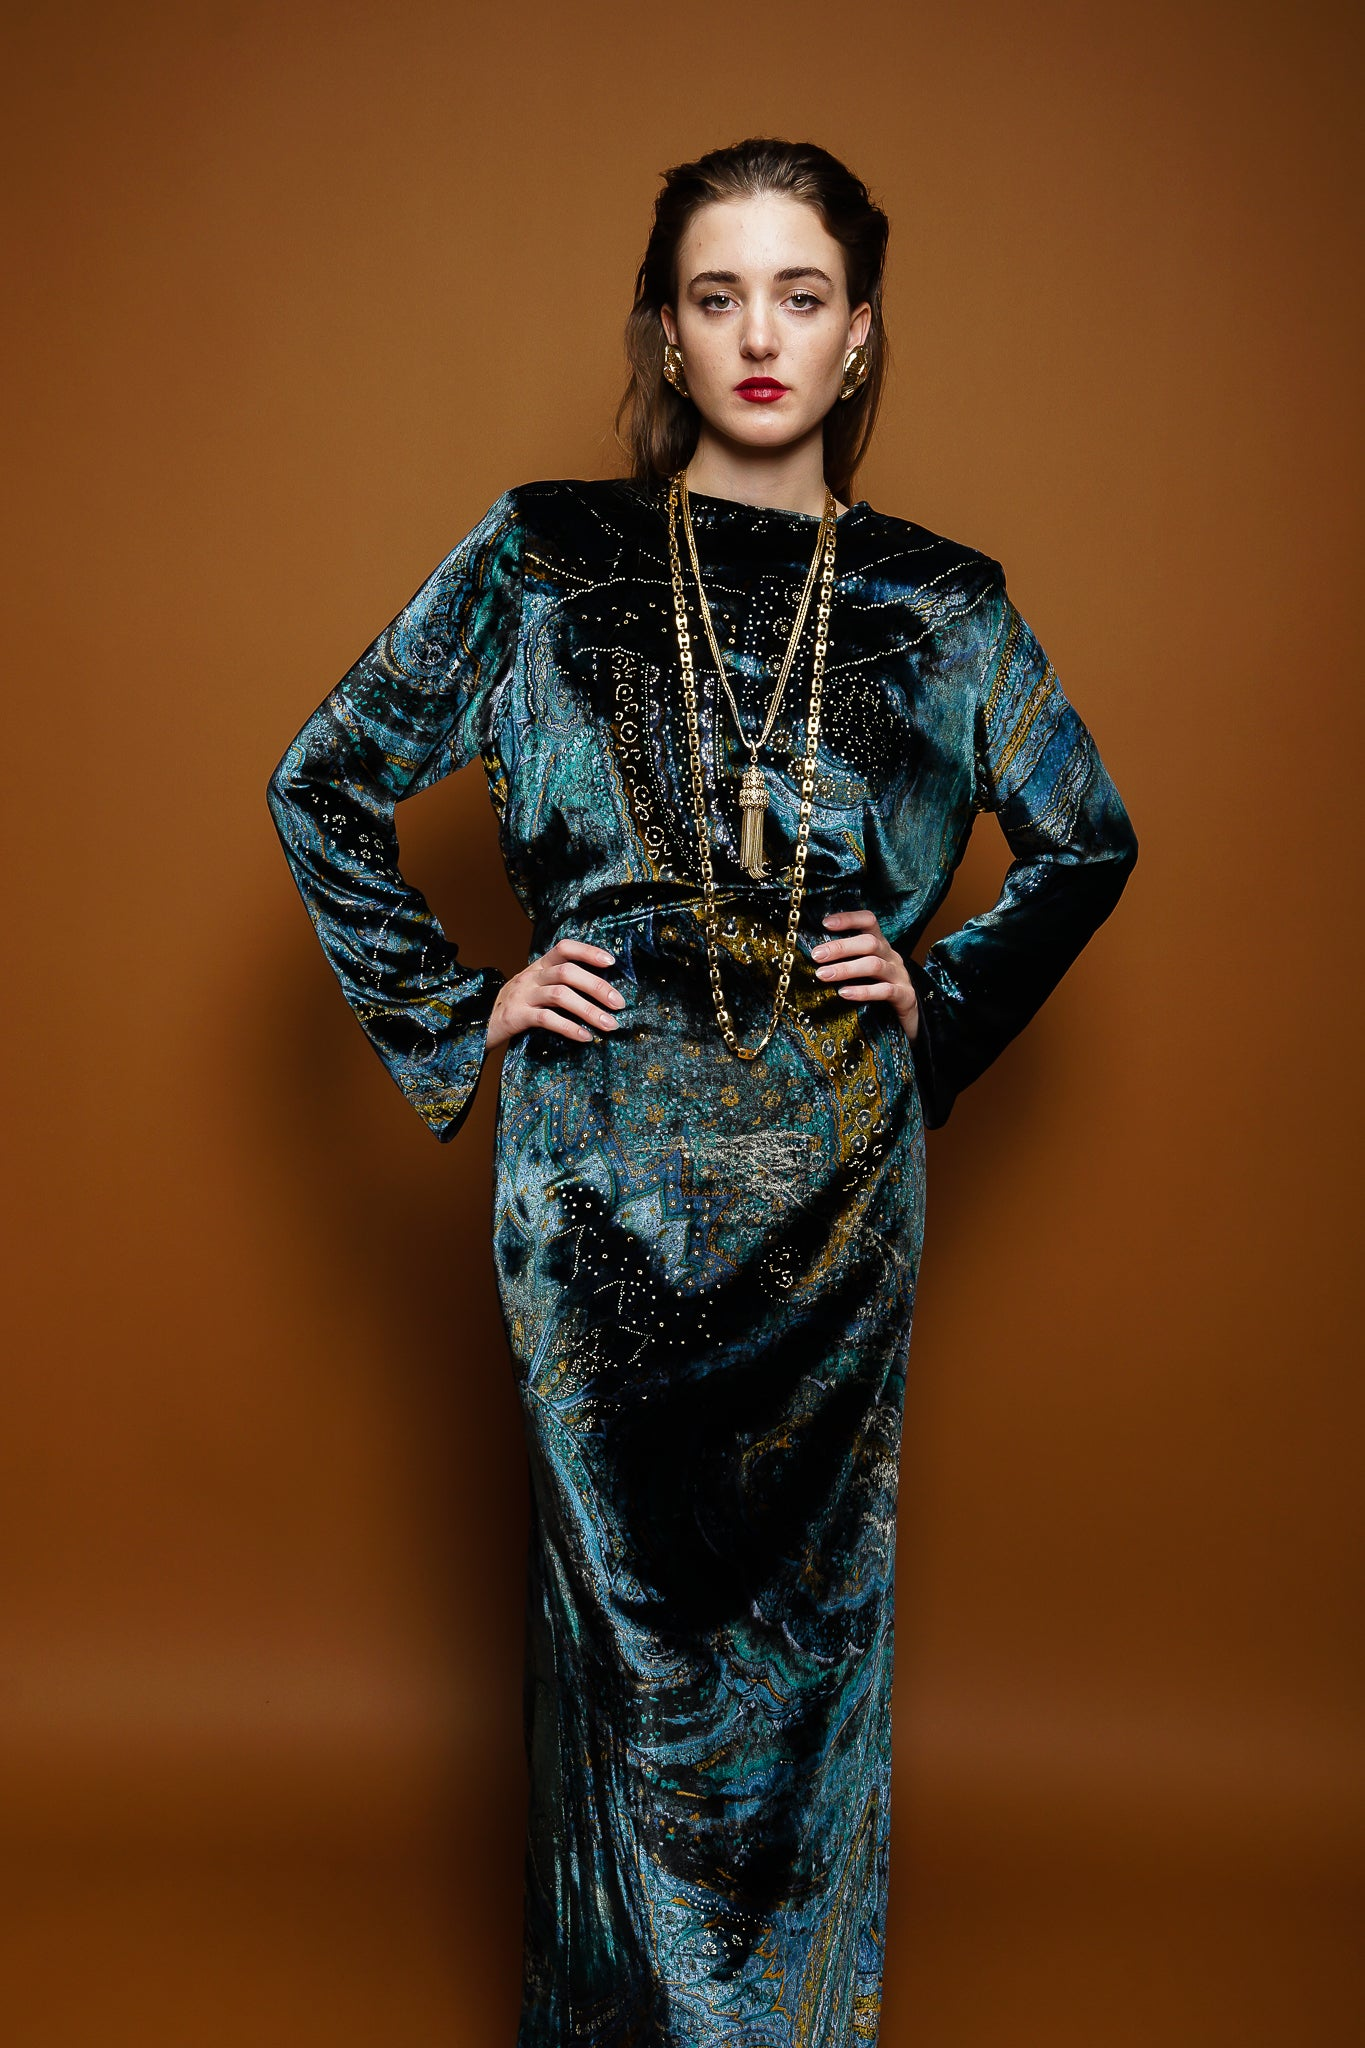 girl in YSL Saint Laurent velvet paisley galaxy gown & necklaces on brown @ Recess Los Angeles